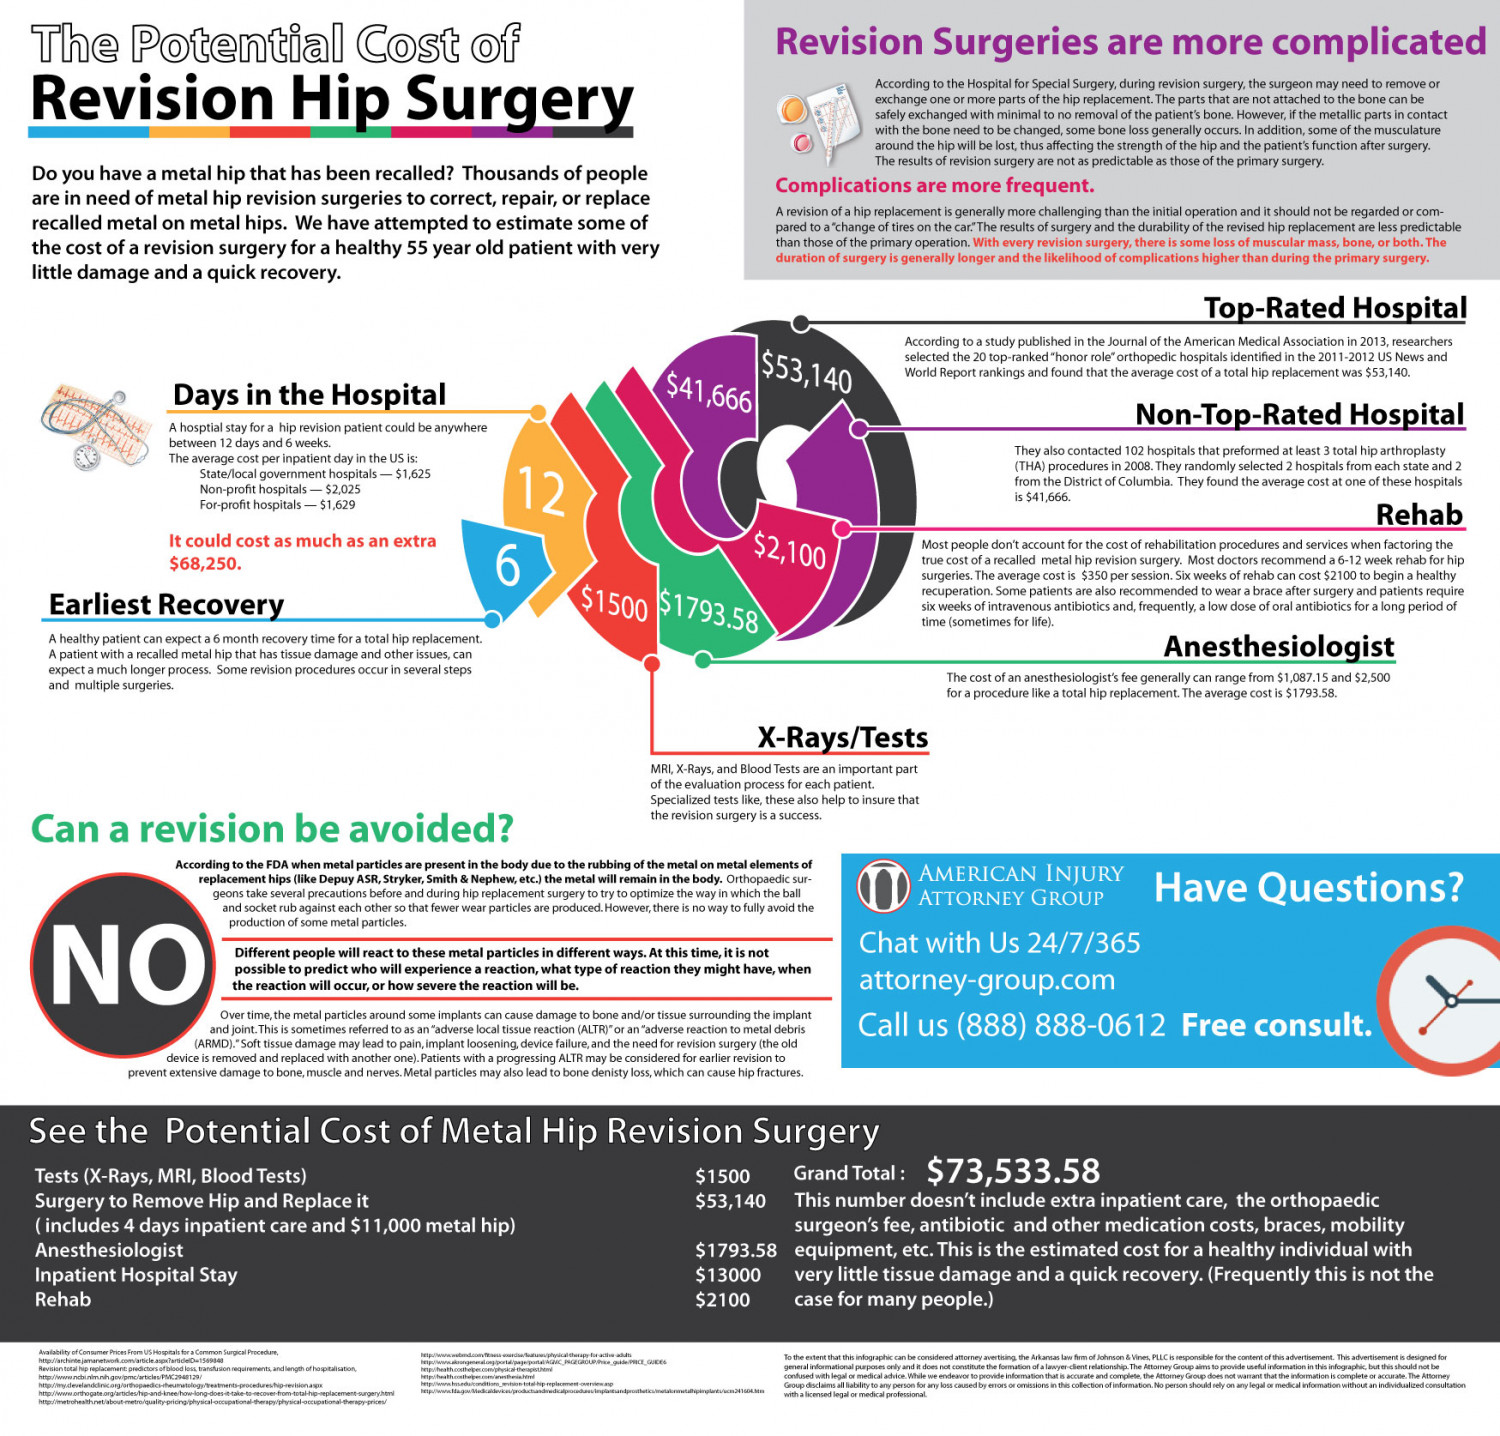 The Potential Cost of a Hip Revision Surgery Infographic